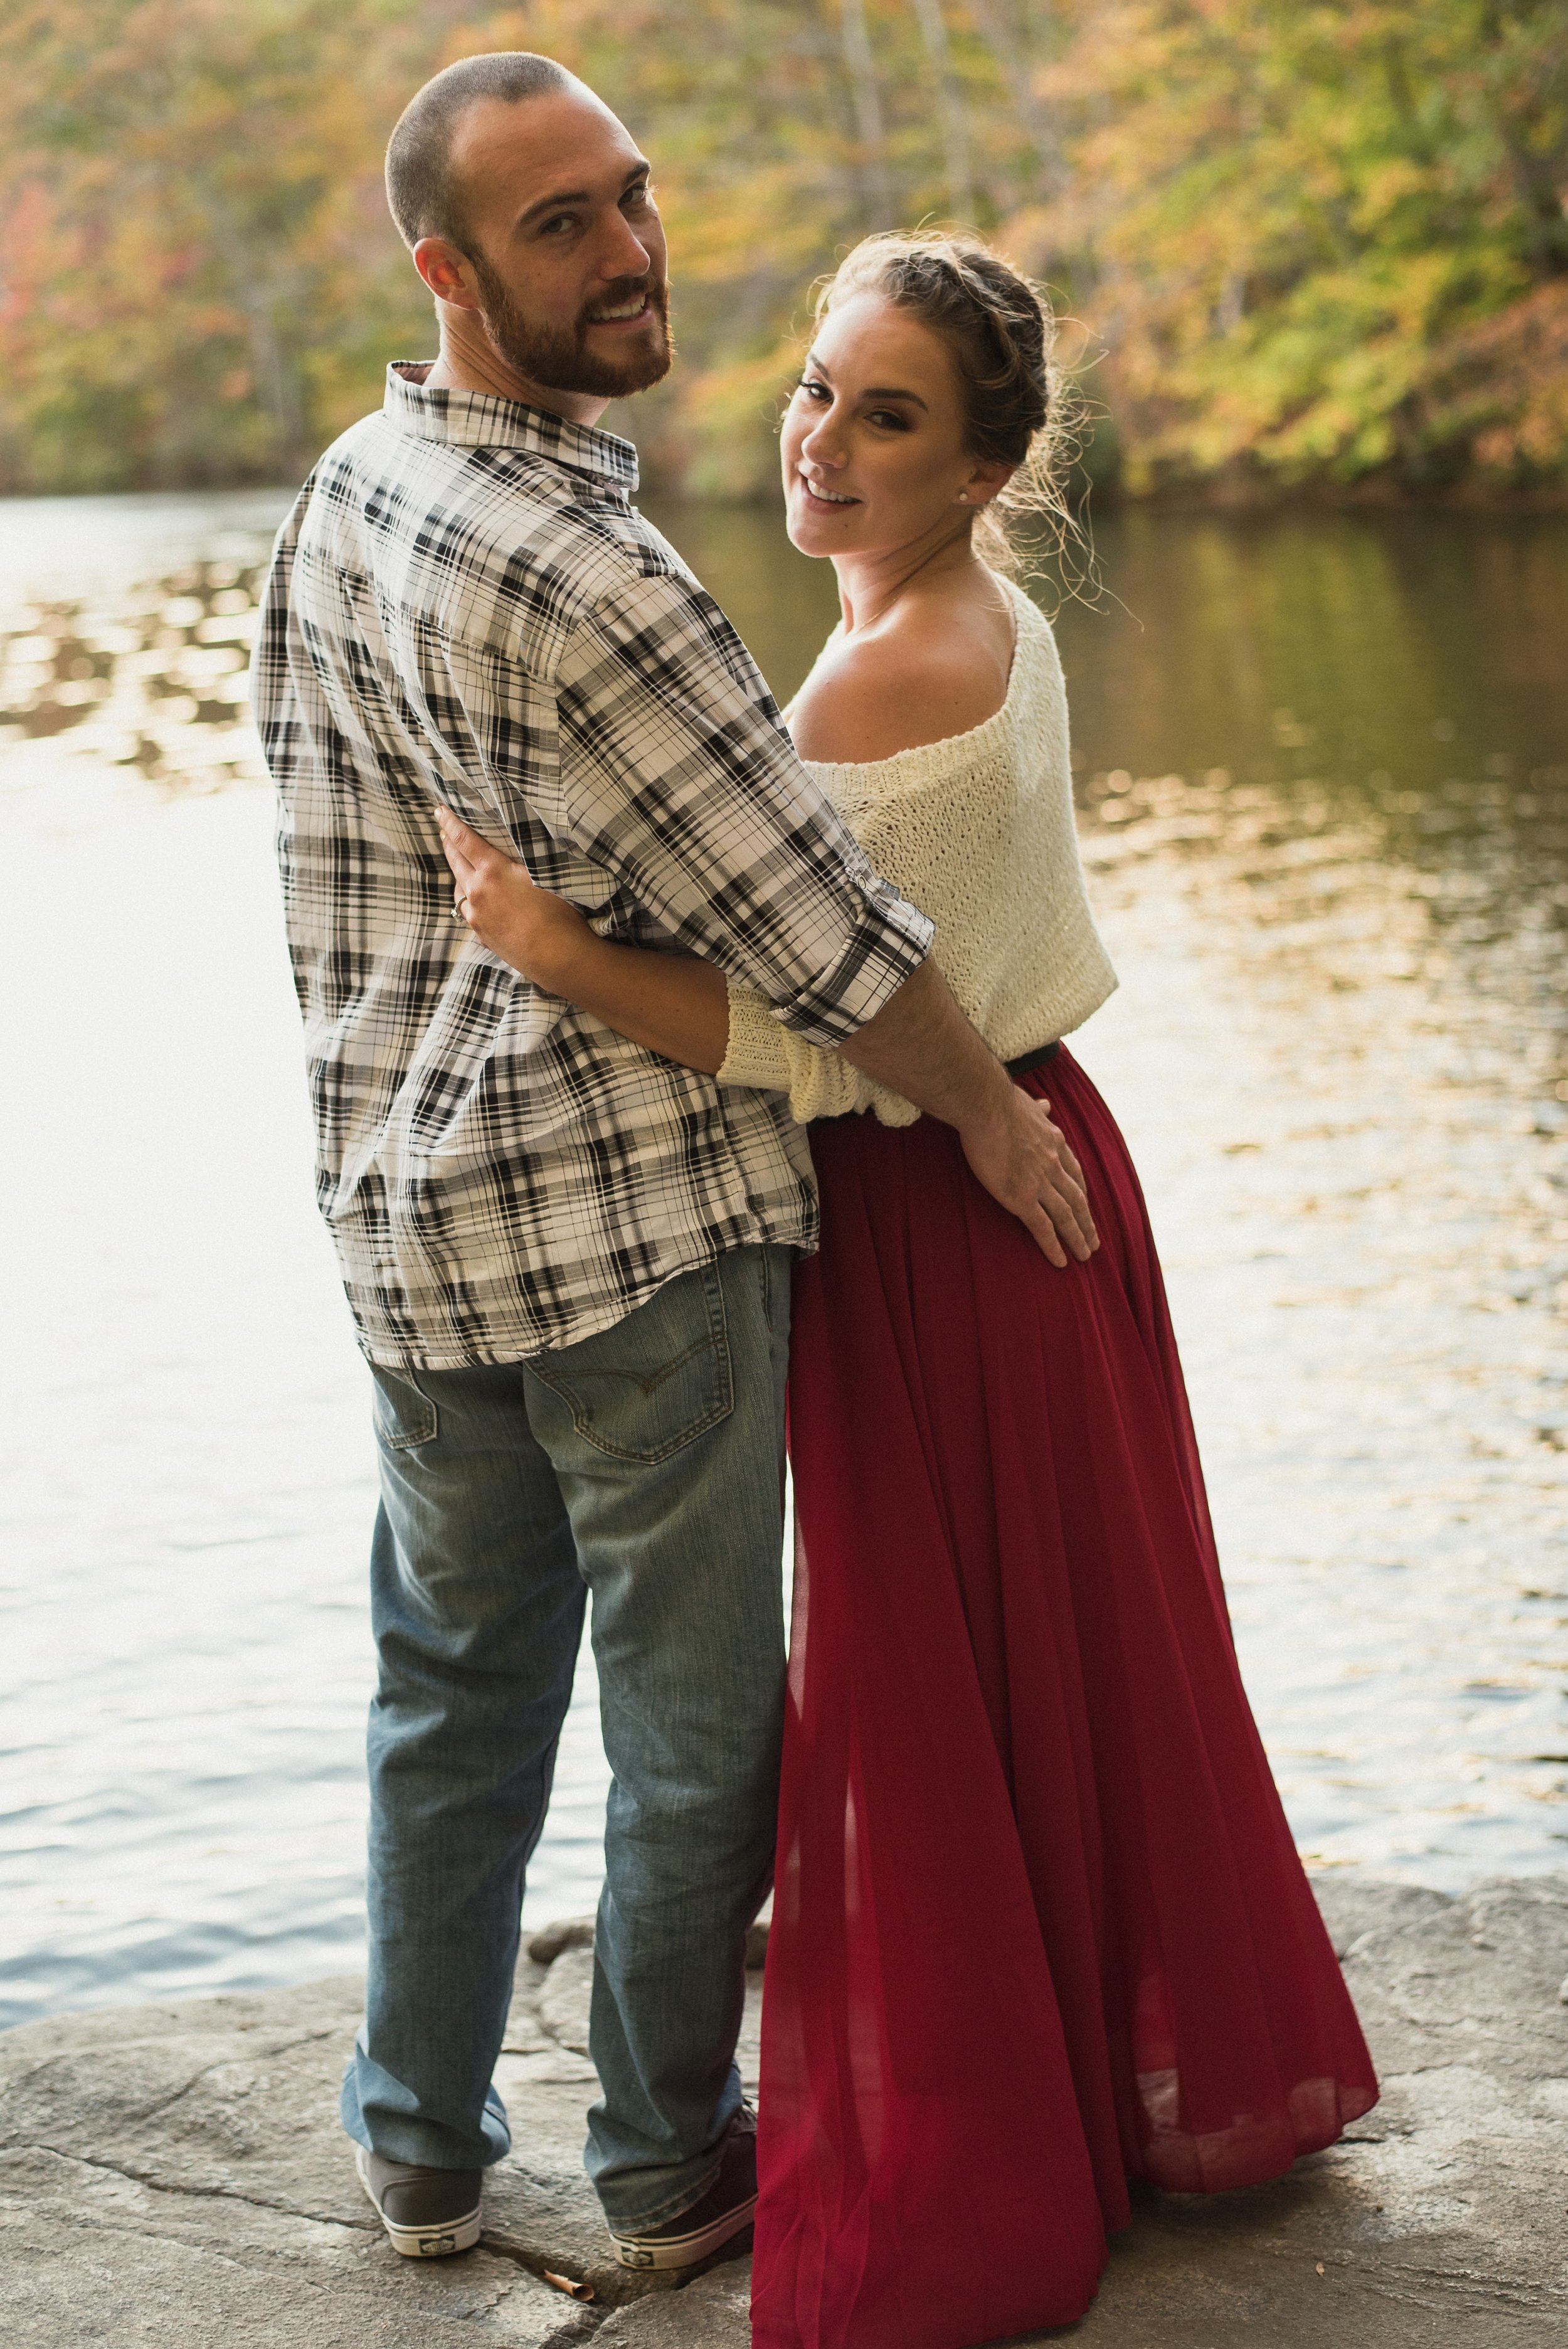 _KLE5231Knothe Engagement_.jpg